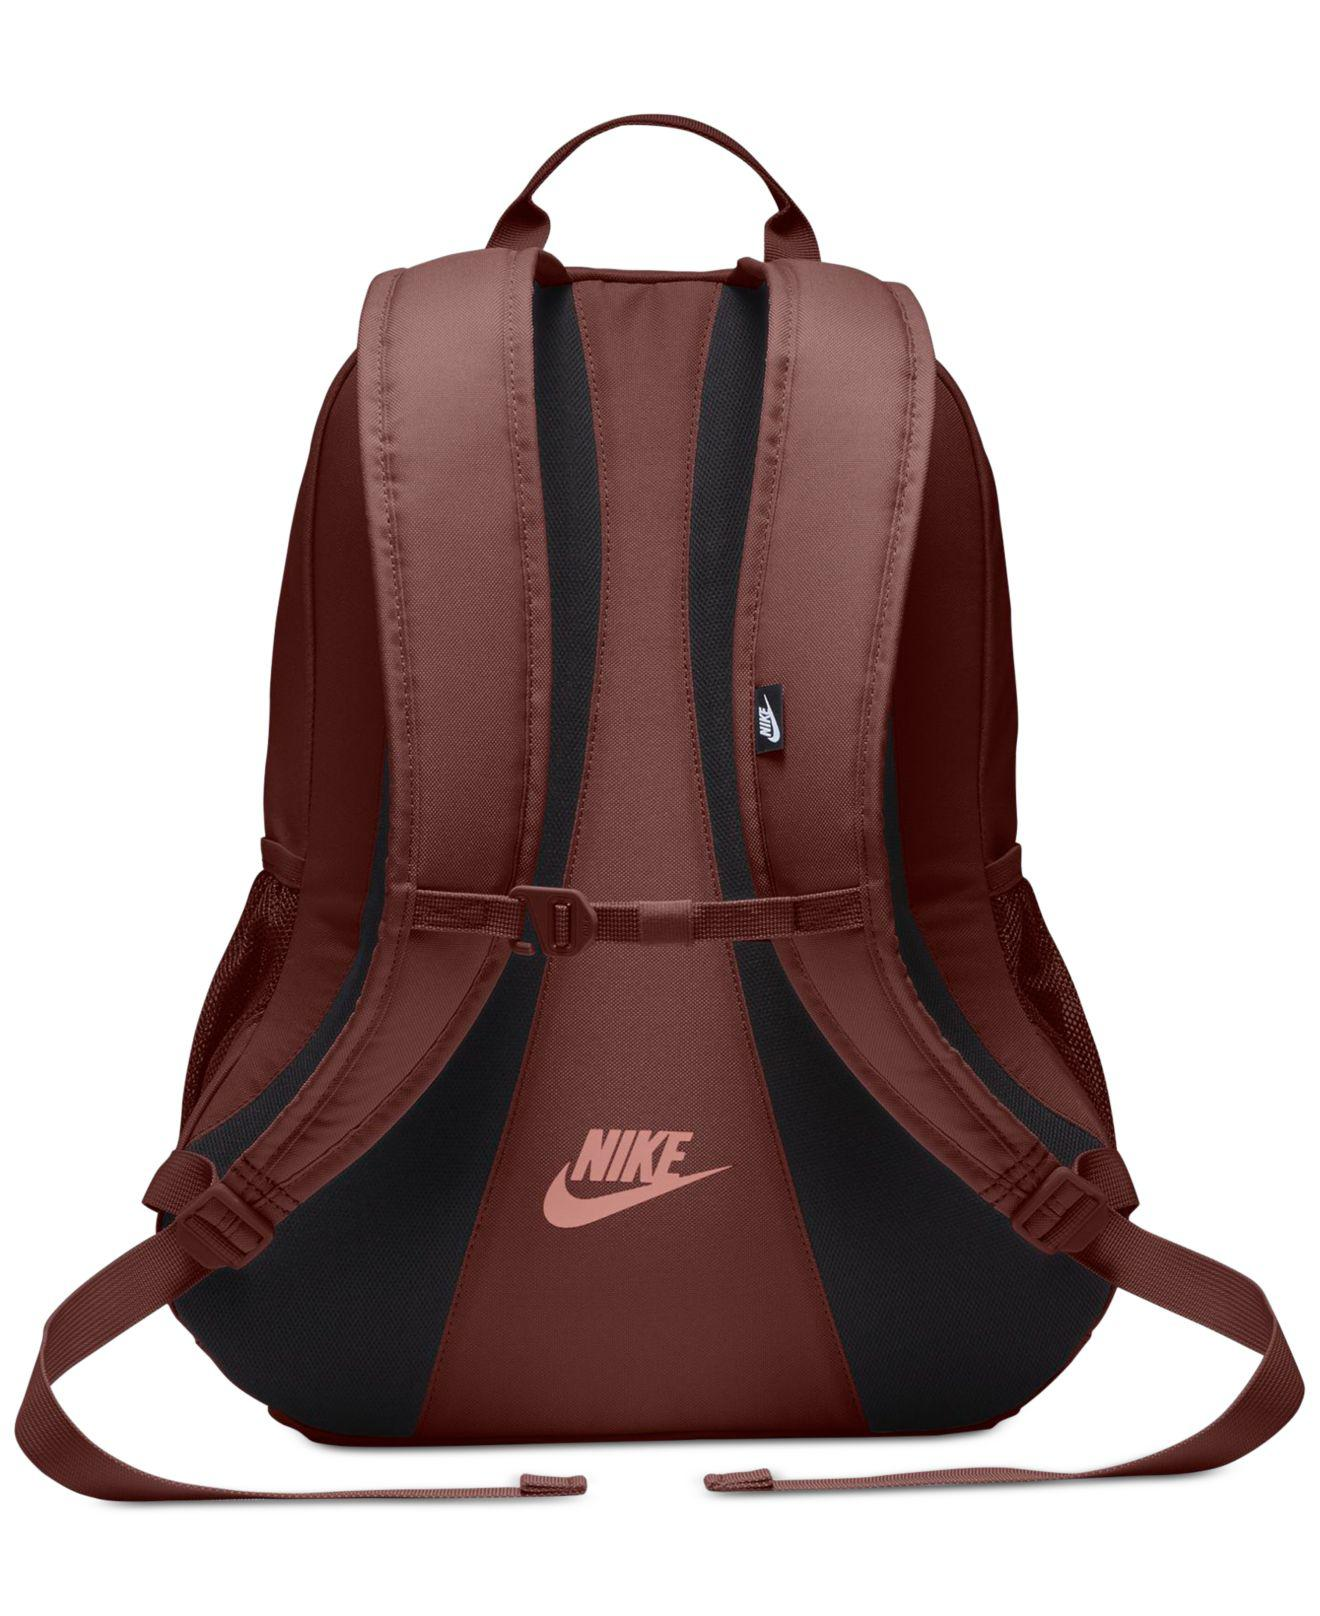 f195ba55df3 ... 25 Litres  shop b48d0 8e69e Lyst - Nike Hayward Futura 2.0 Backpack in  Red - Save 25.454545454545453% ...